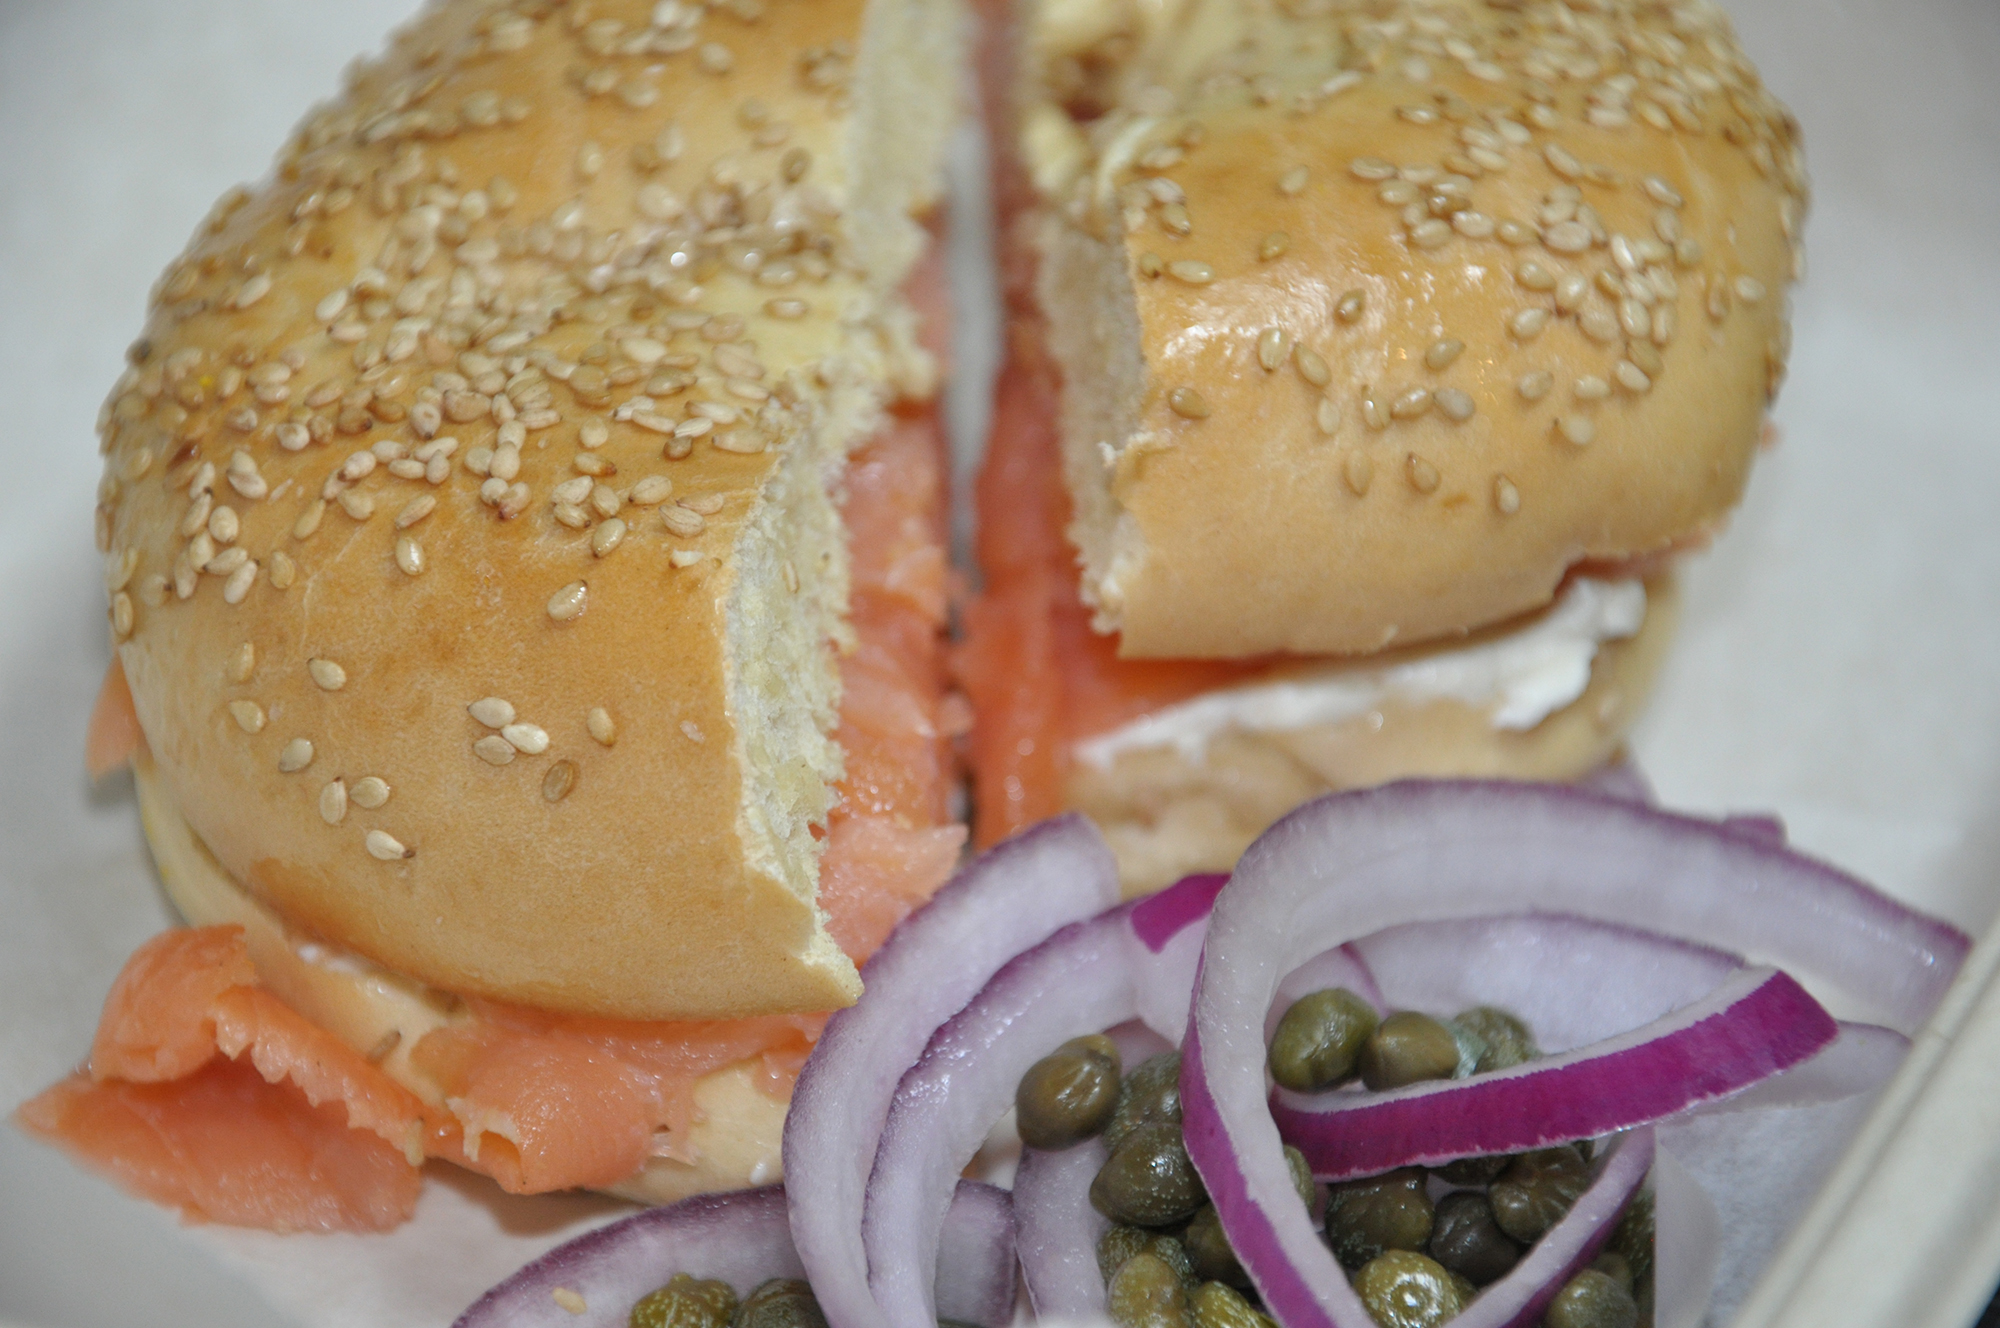 Lox and Cream Cheese Bagel